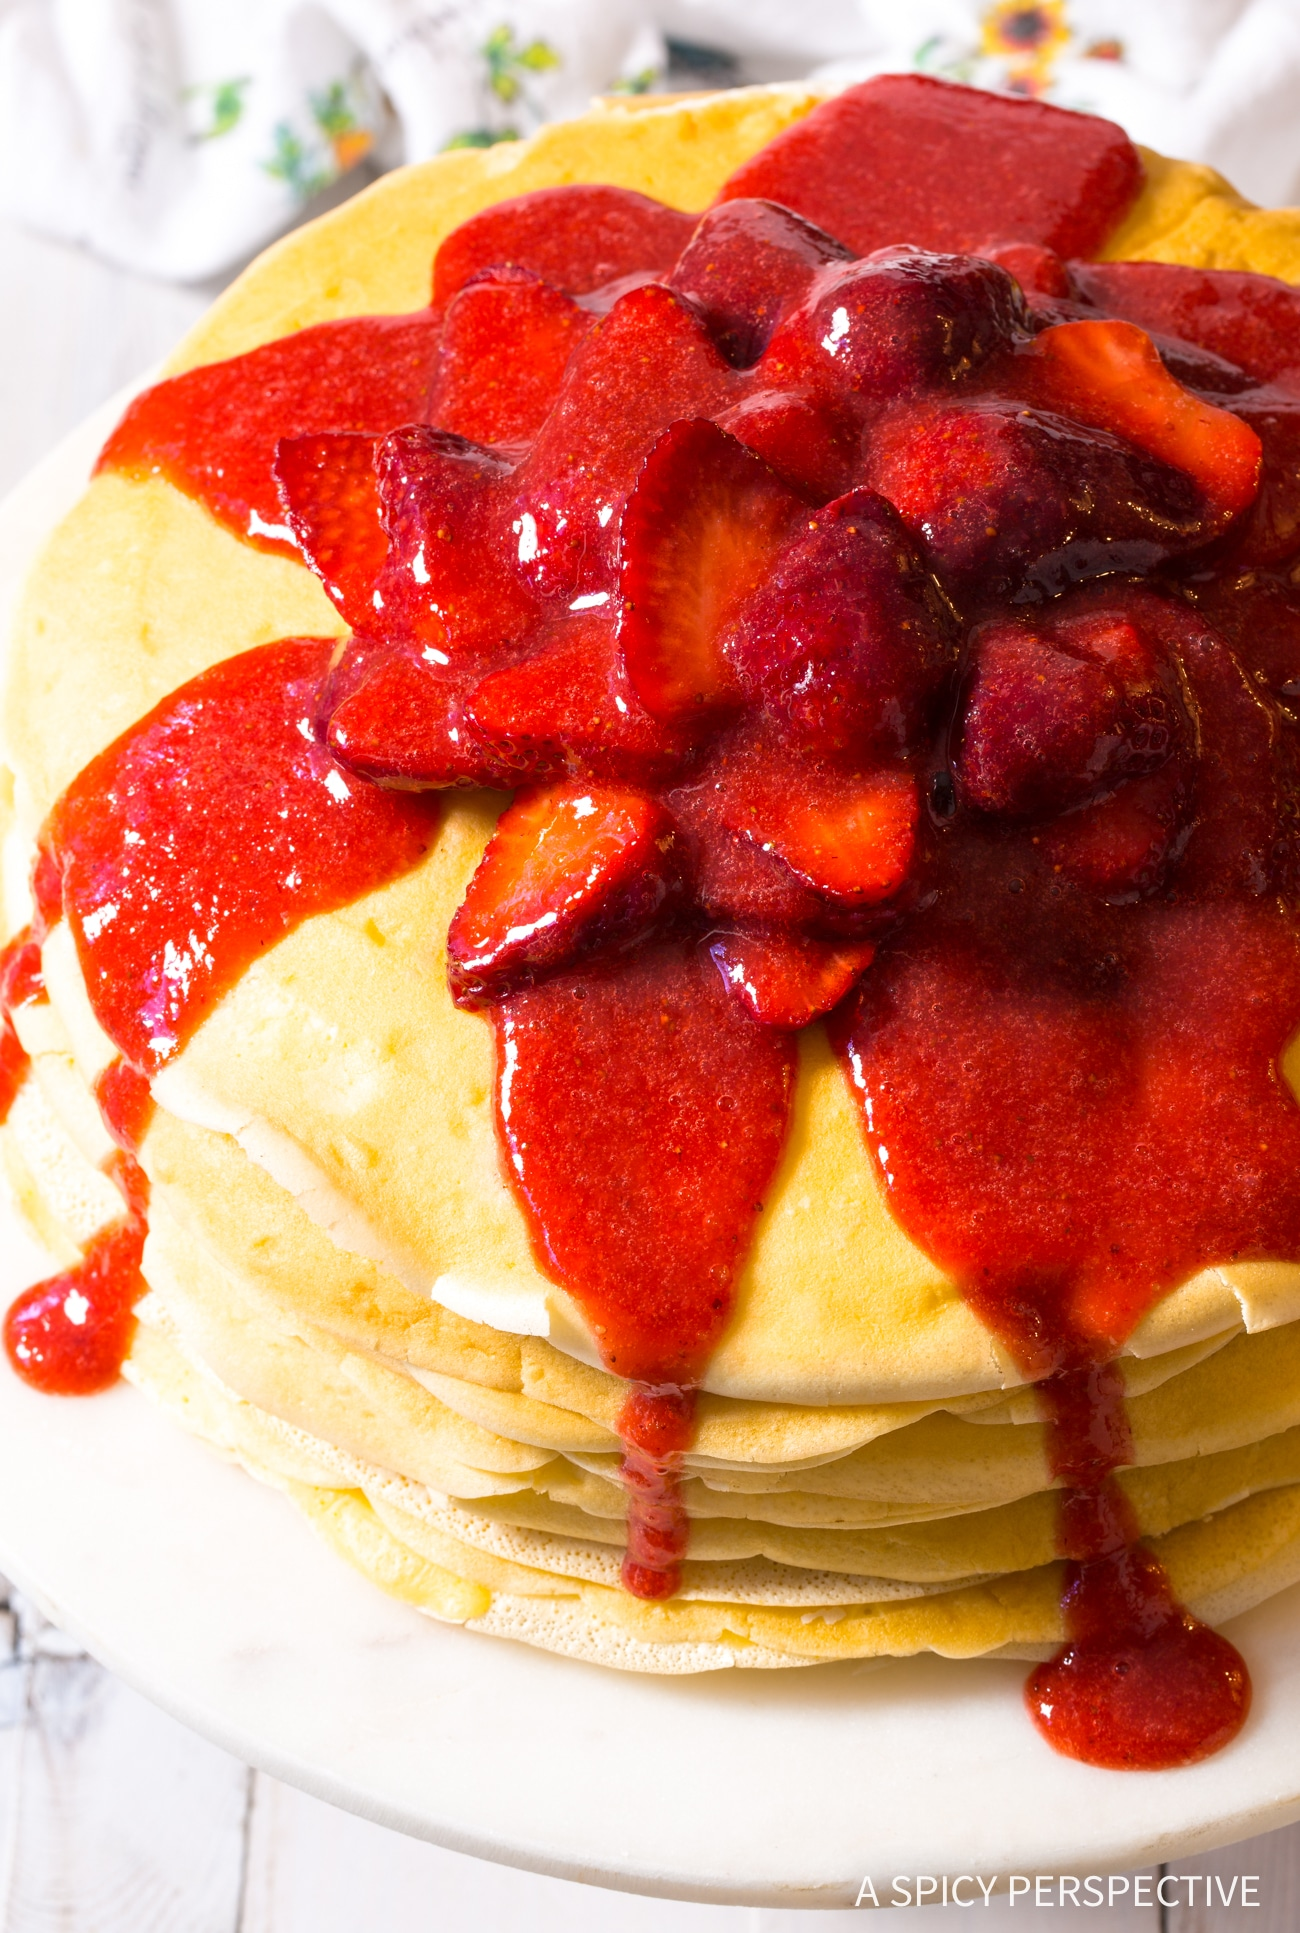 Dazzling Lemon Ricotta Crepe Cake with Strawberry Sauce Recipe (Mother's Day Brunch!)